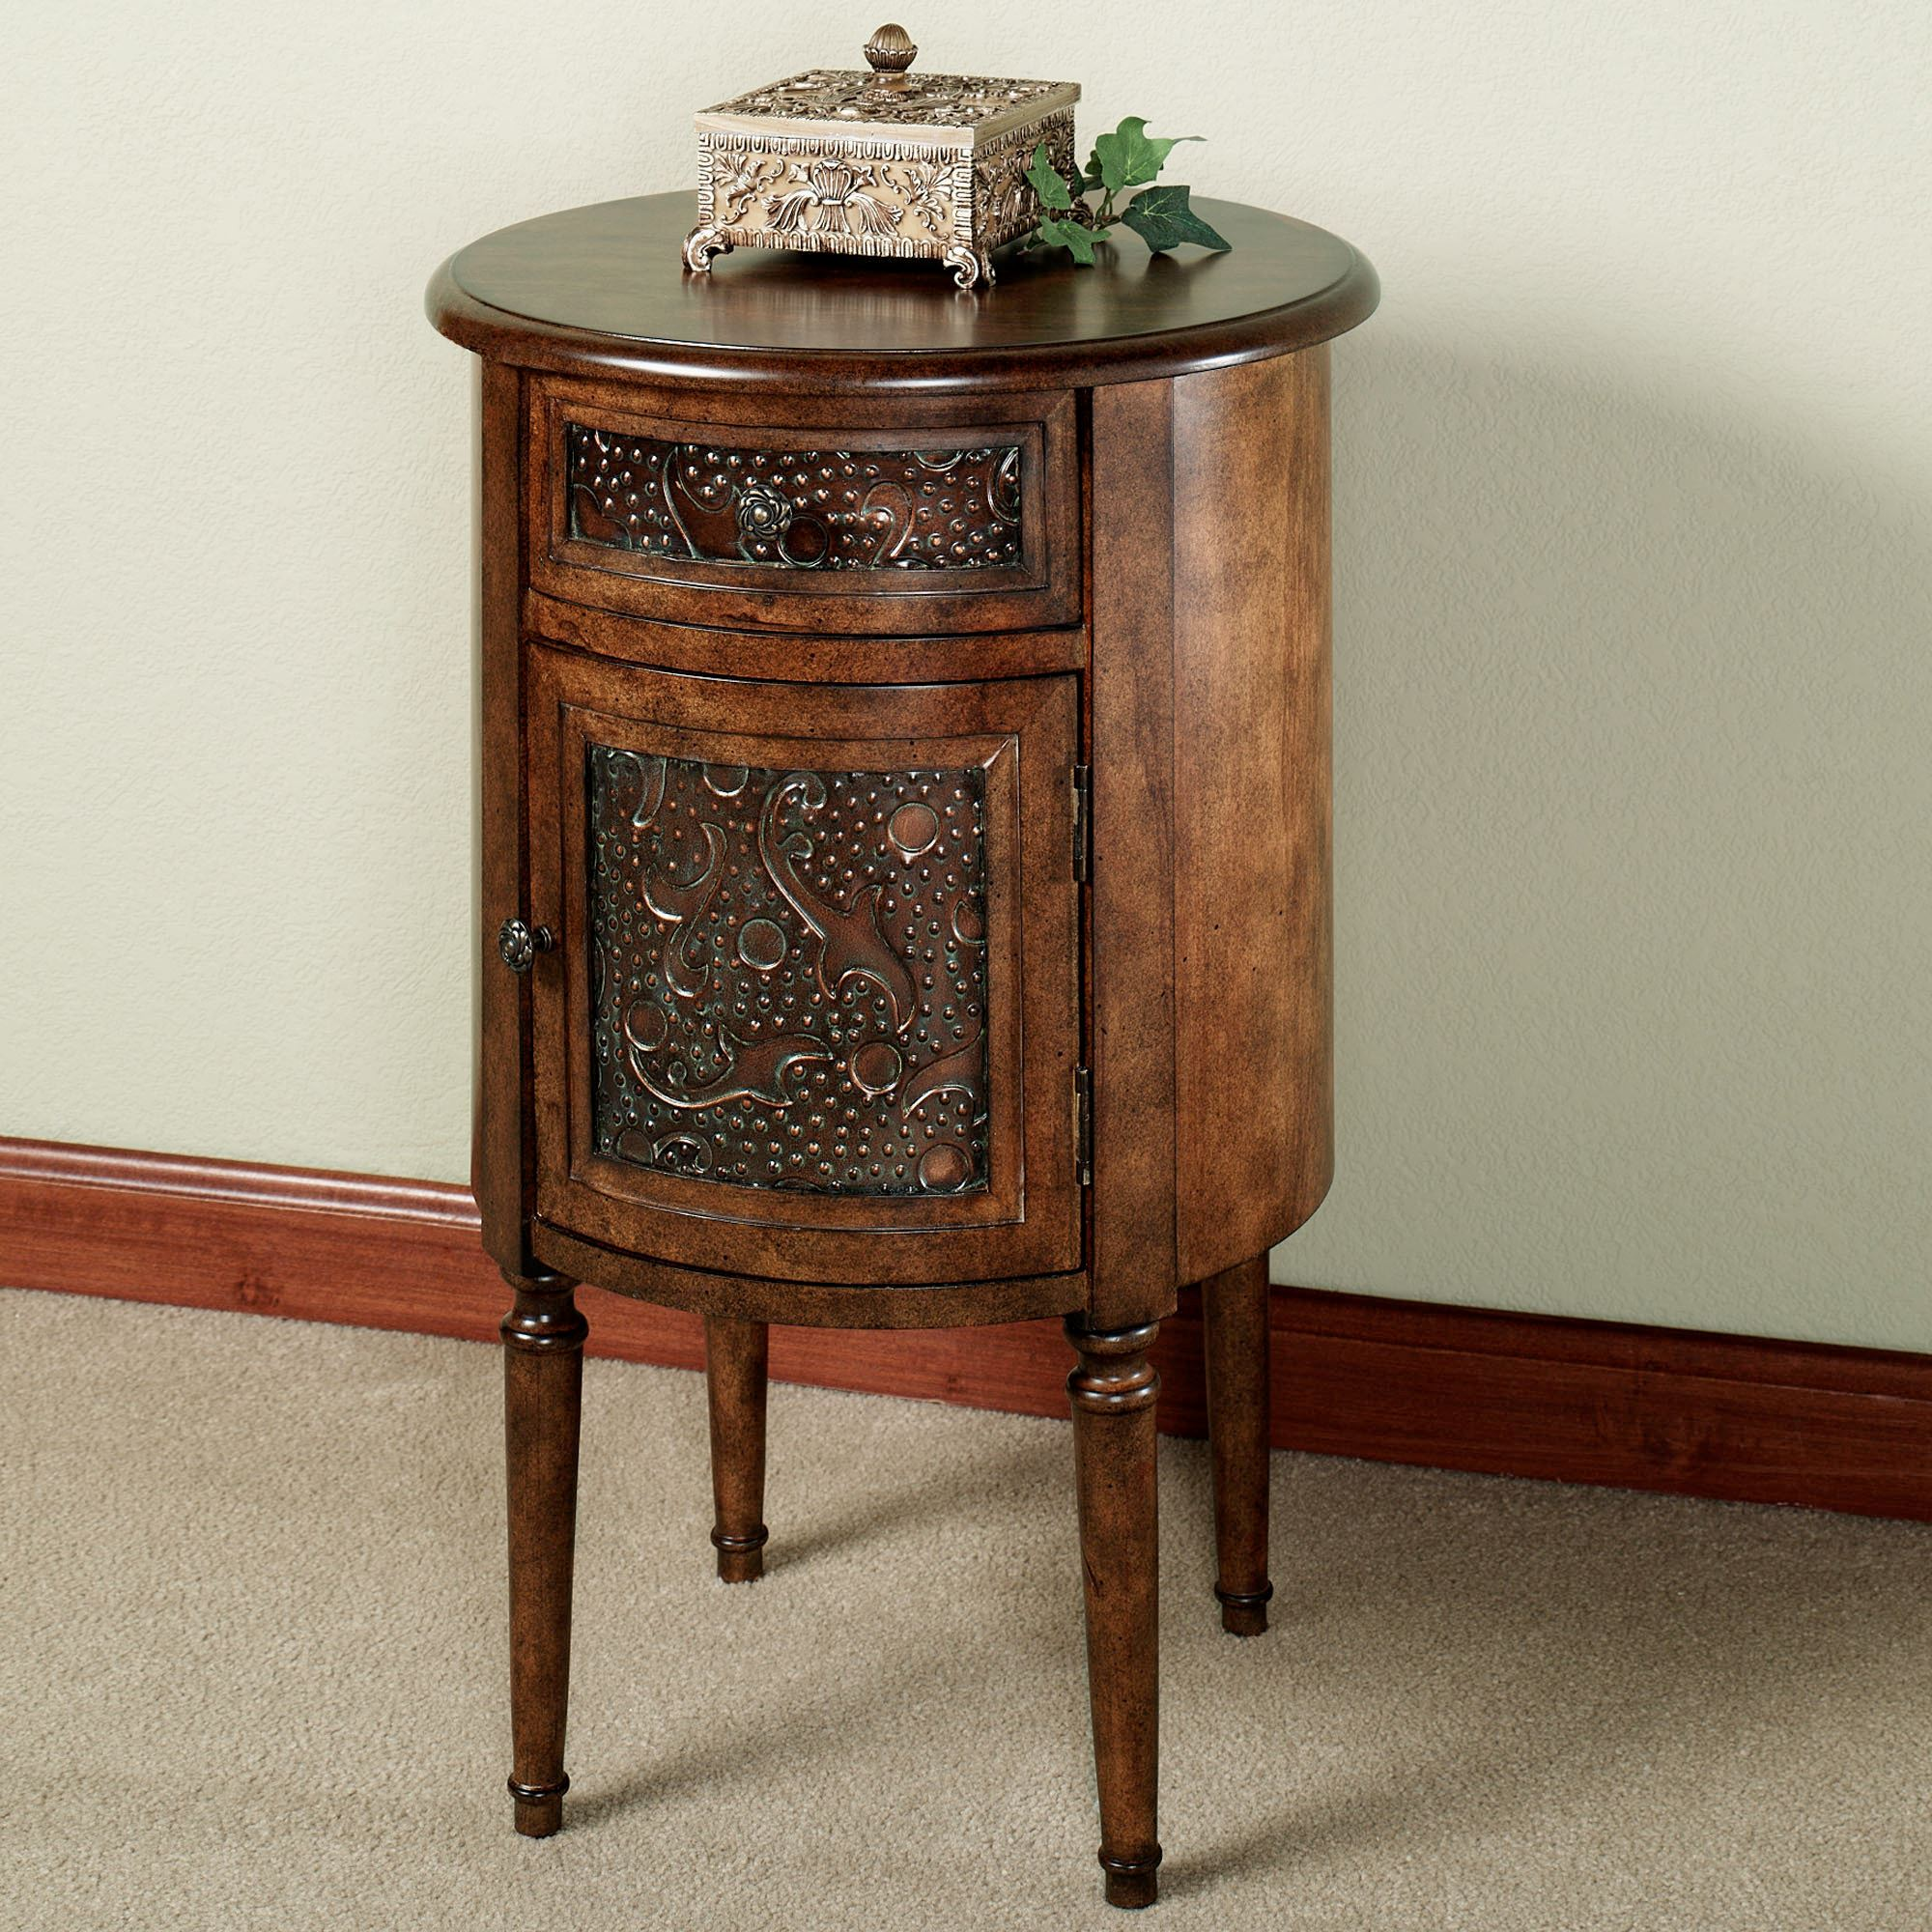 rustic corner accent table probably terrific nice round end tables metal occasional mirrored side with wonderful roundorage solid wood construction vintage classic antique brown